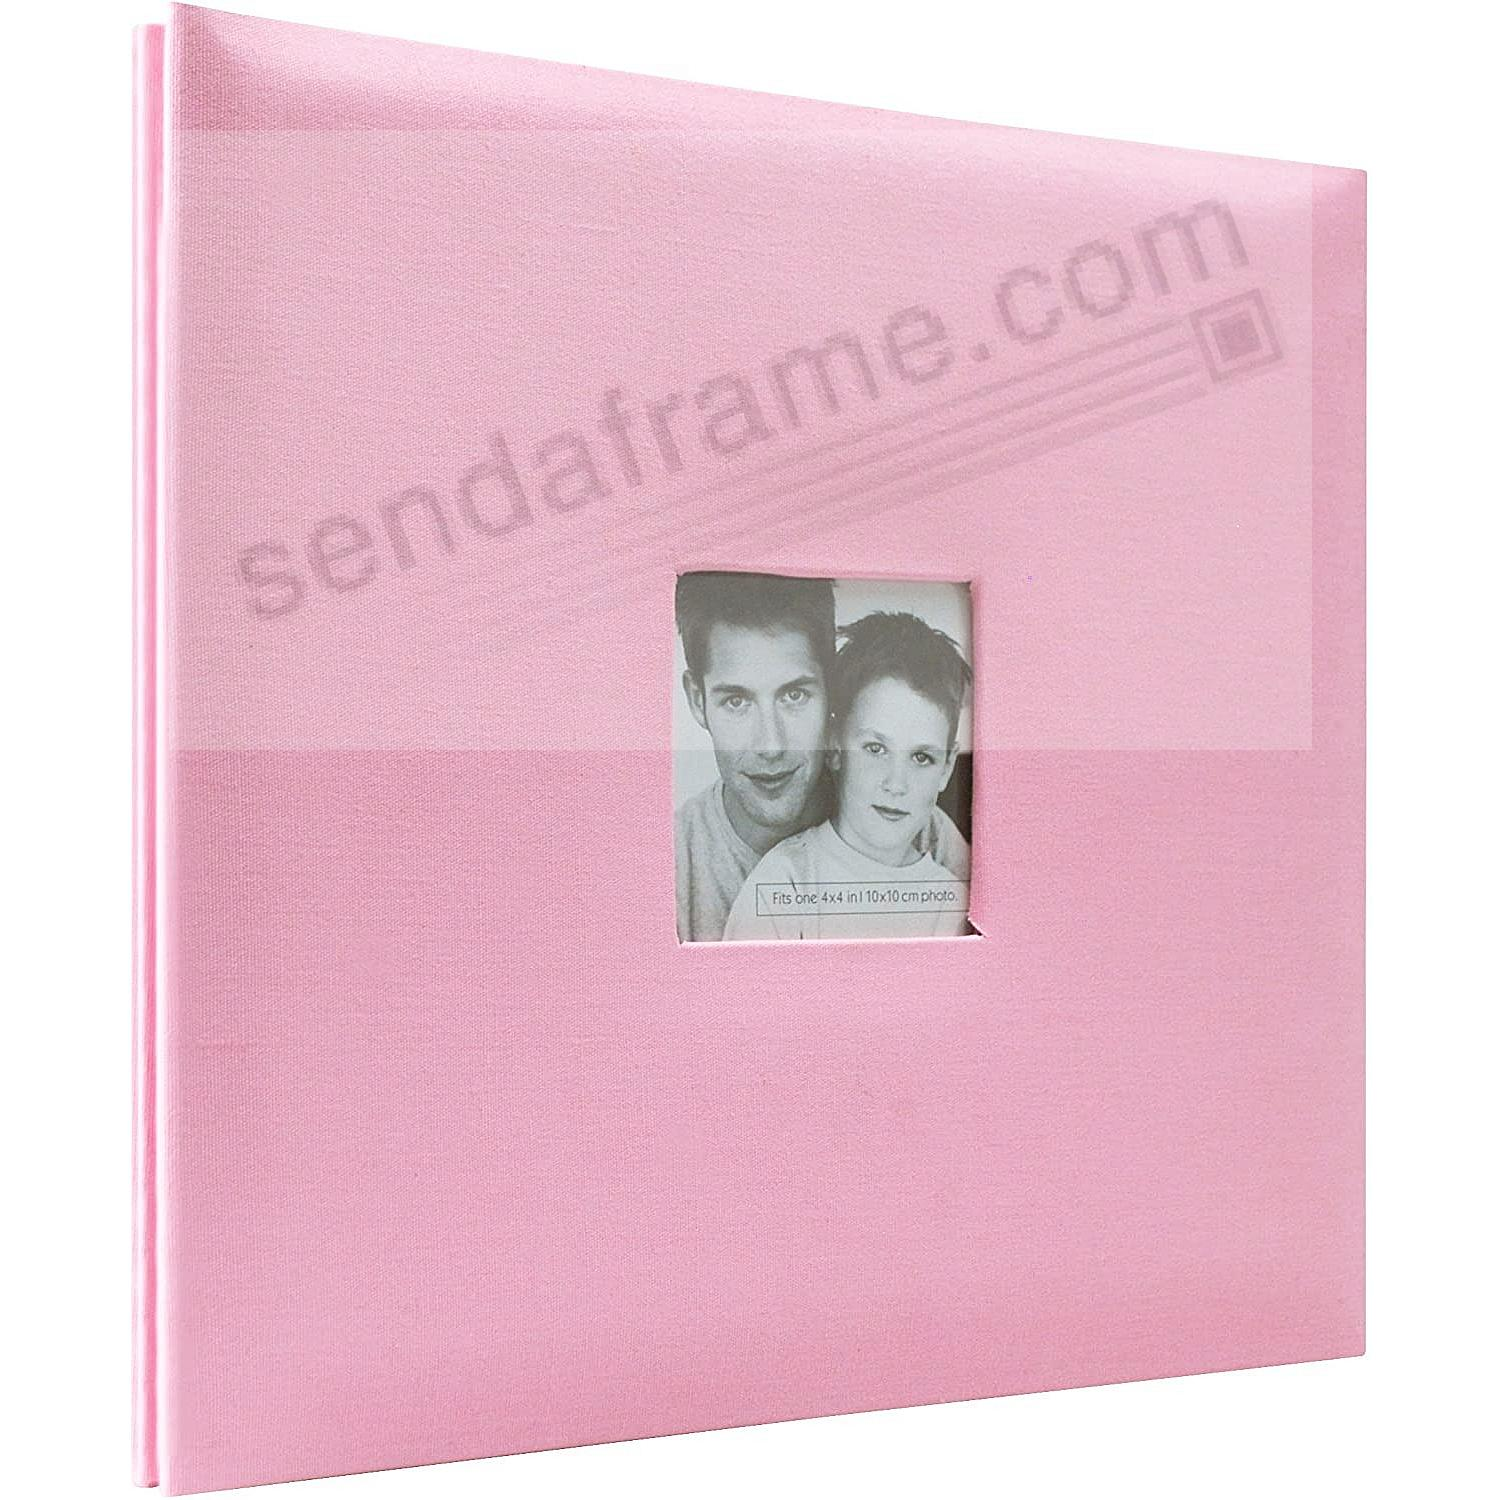 Pink Fabric Post-Bound Album w/12x12 pocket pages